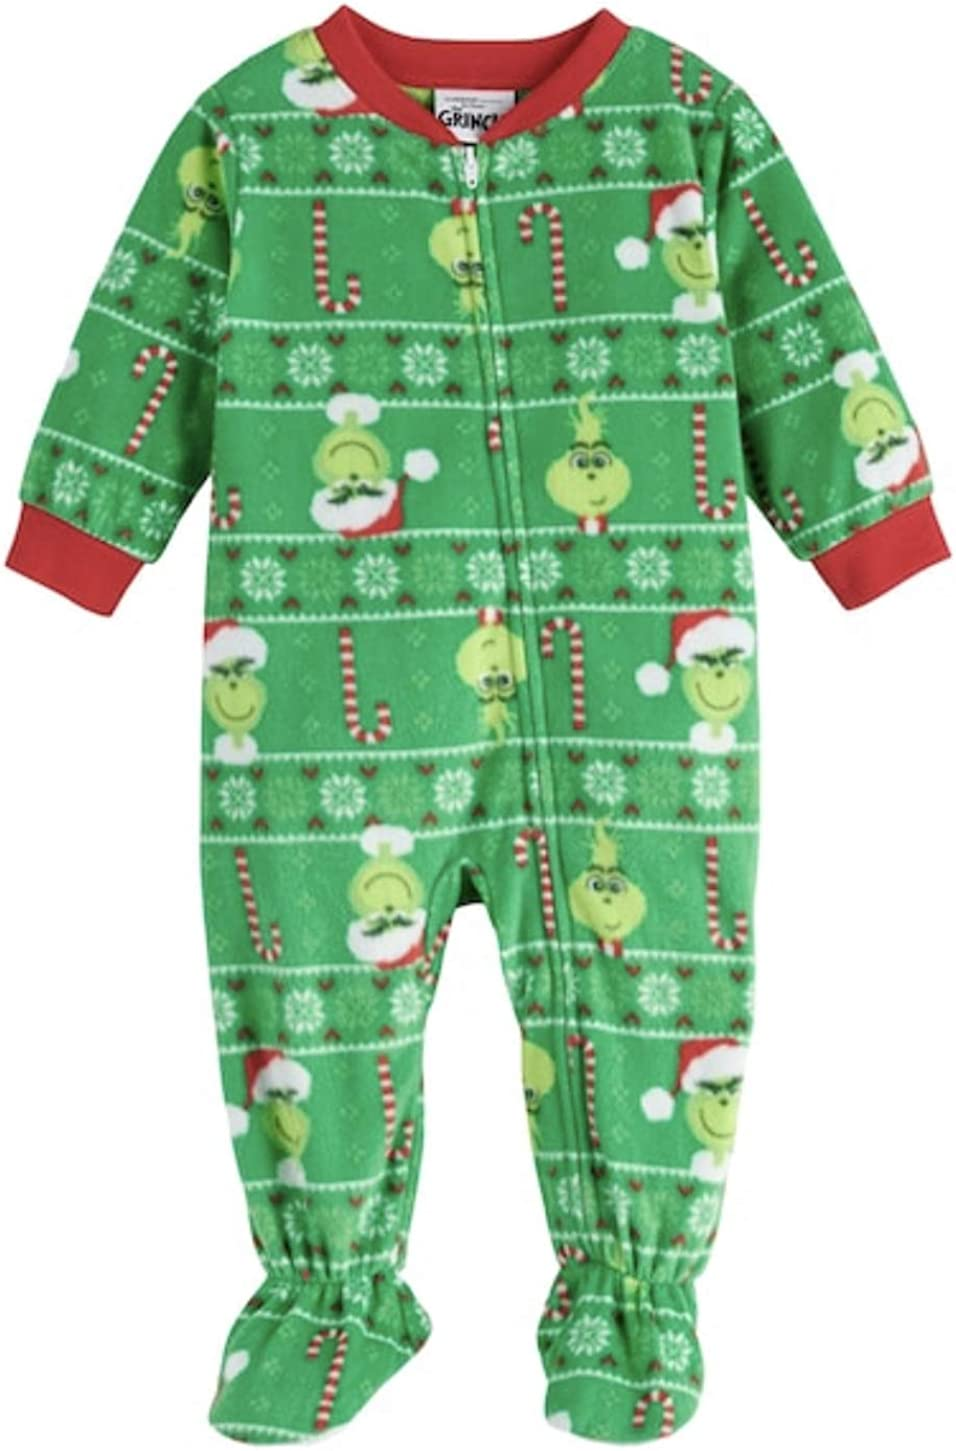 Kohl's How The Grinch Stole Christmas Grinch Microfleece Blanket Sleeper - 24 Month - Jammies for Your Families Green (Boy/Girl)